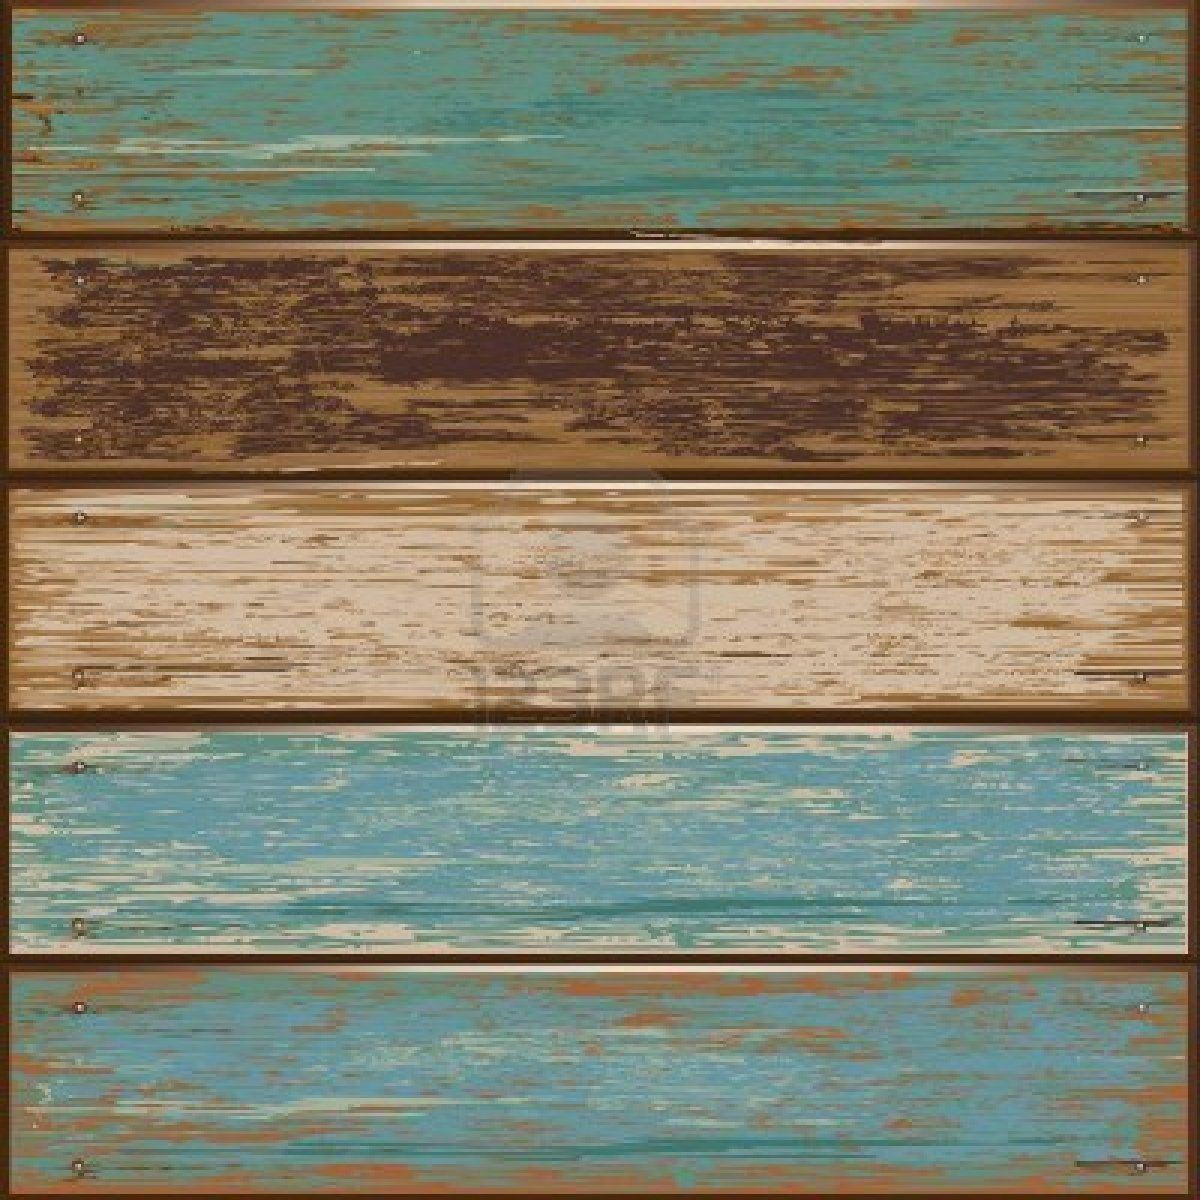 Antique Wood Furniture Texture